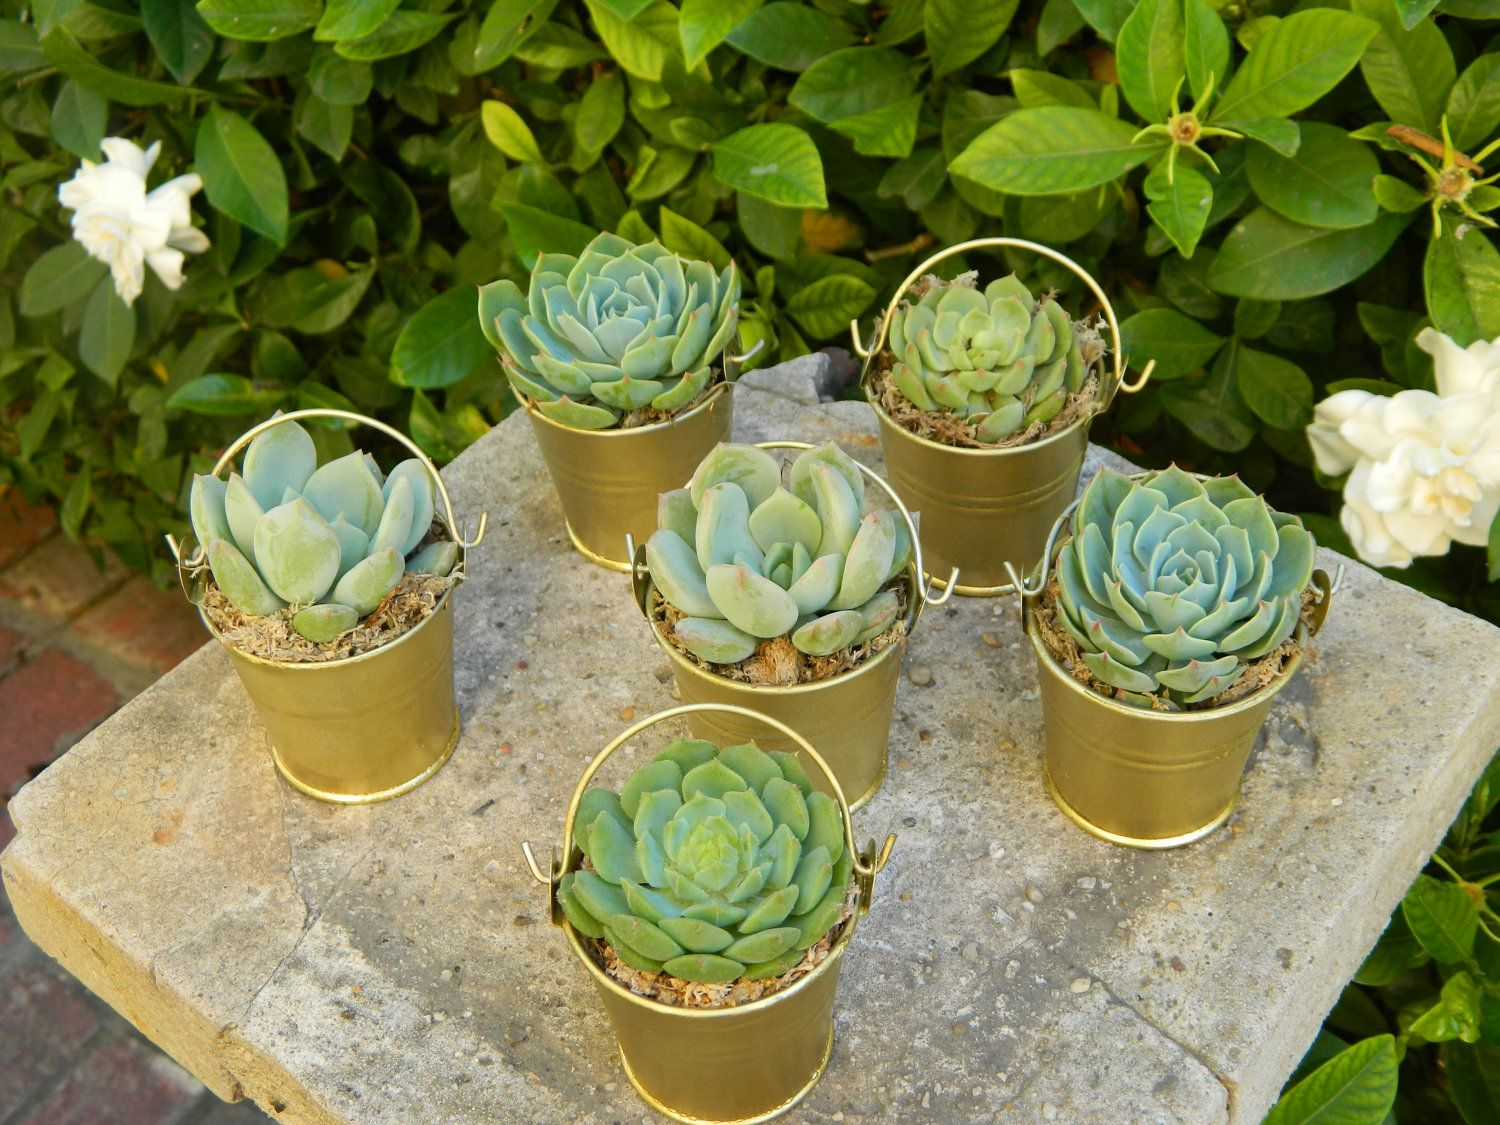 fall wedding favors Special Listing for Erin 80 Succulent Wedding Favors Rustic Wedding Favor Fall Wedding Favor Garden Party Favor Mini Pail Succulent